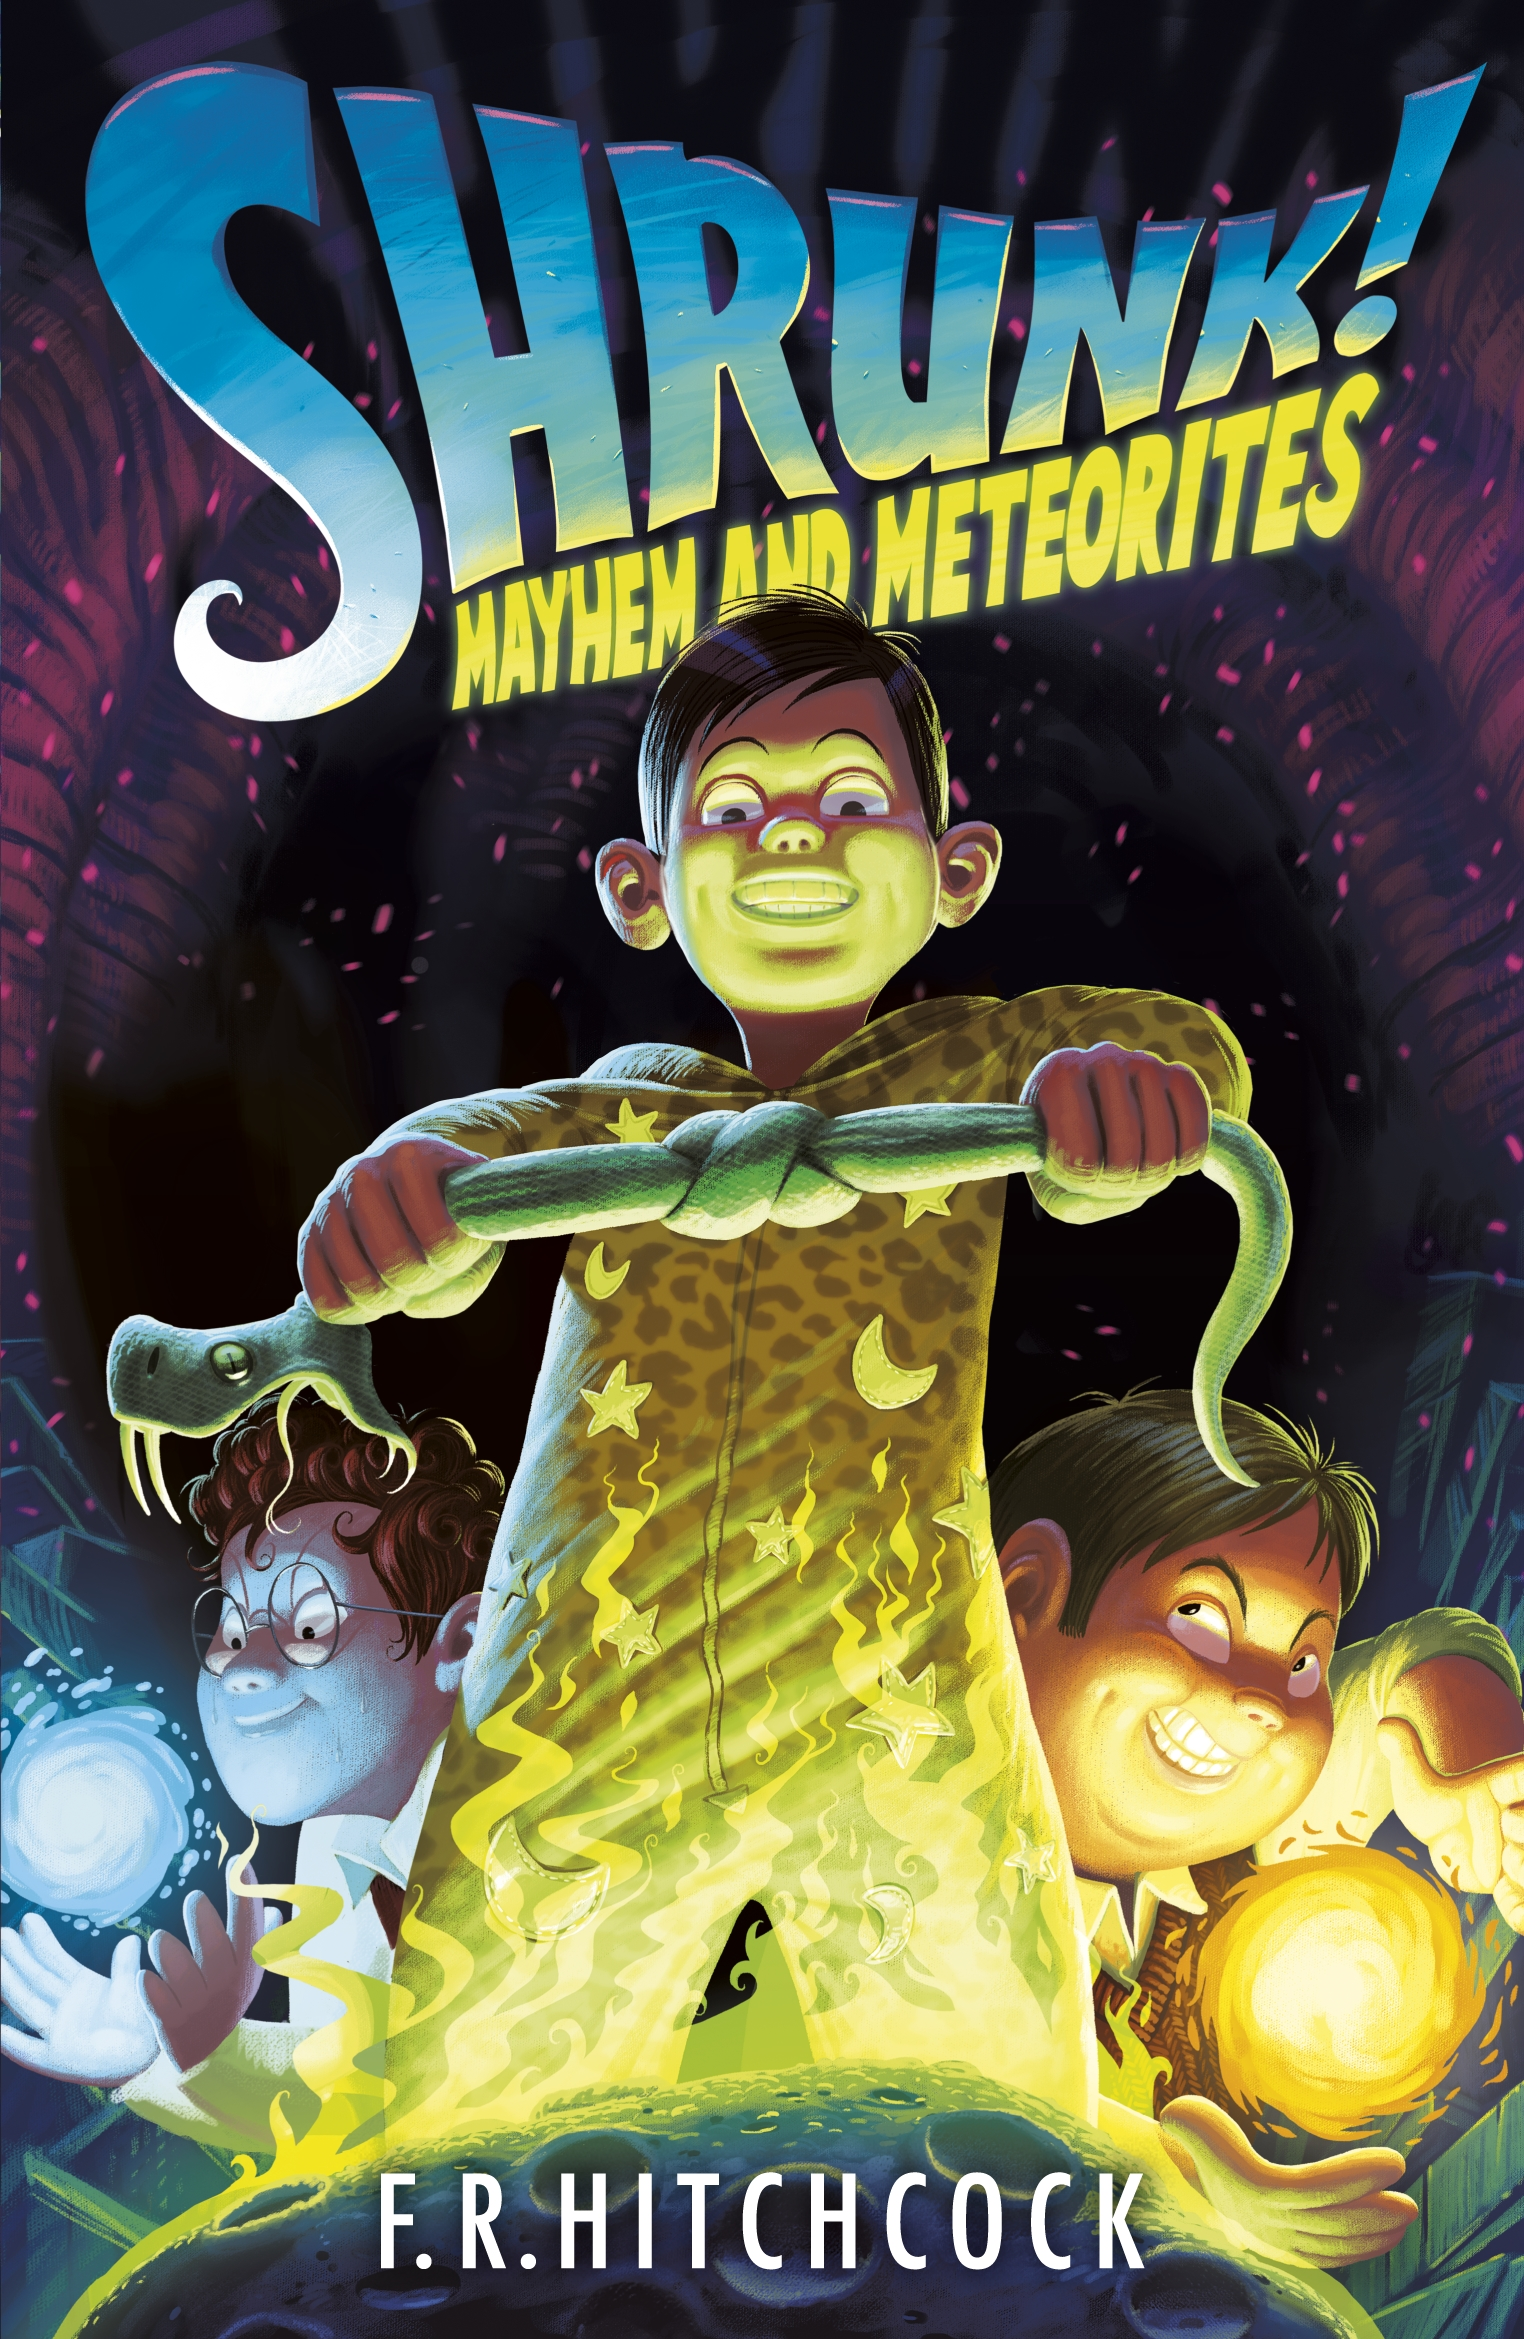 Mayhem and Meteorites: A SHRUNK! Adventure by Fleur Hitchcock